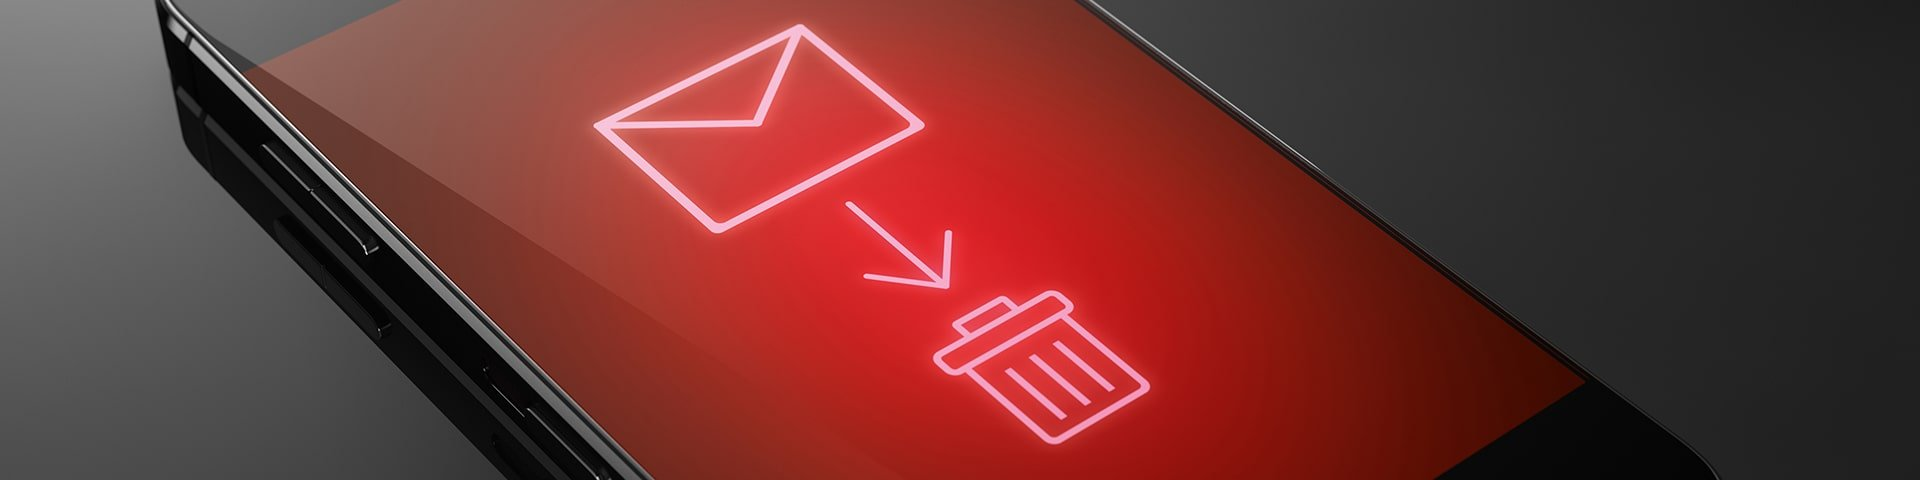 How to Delete Instagram Messages: 2 Different Methods for Success